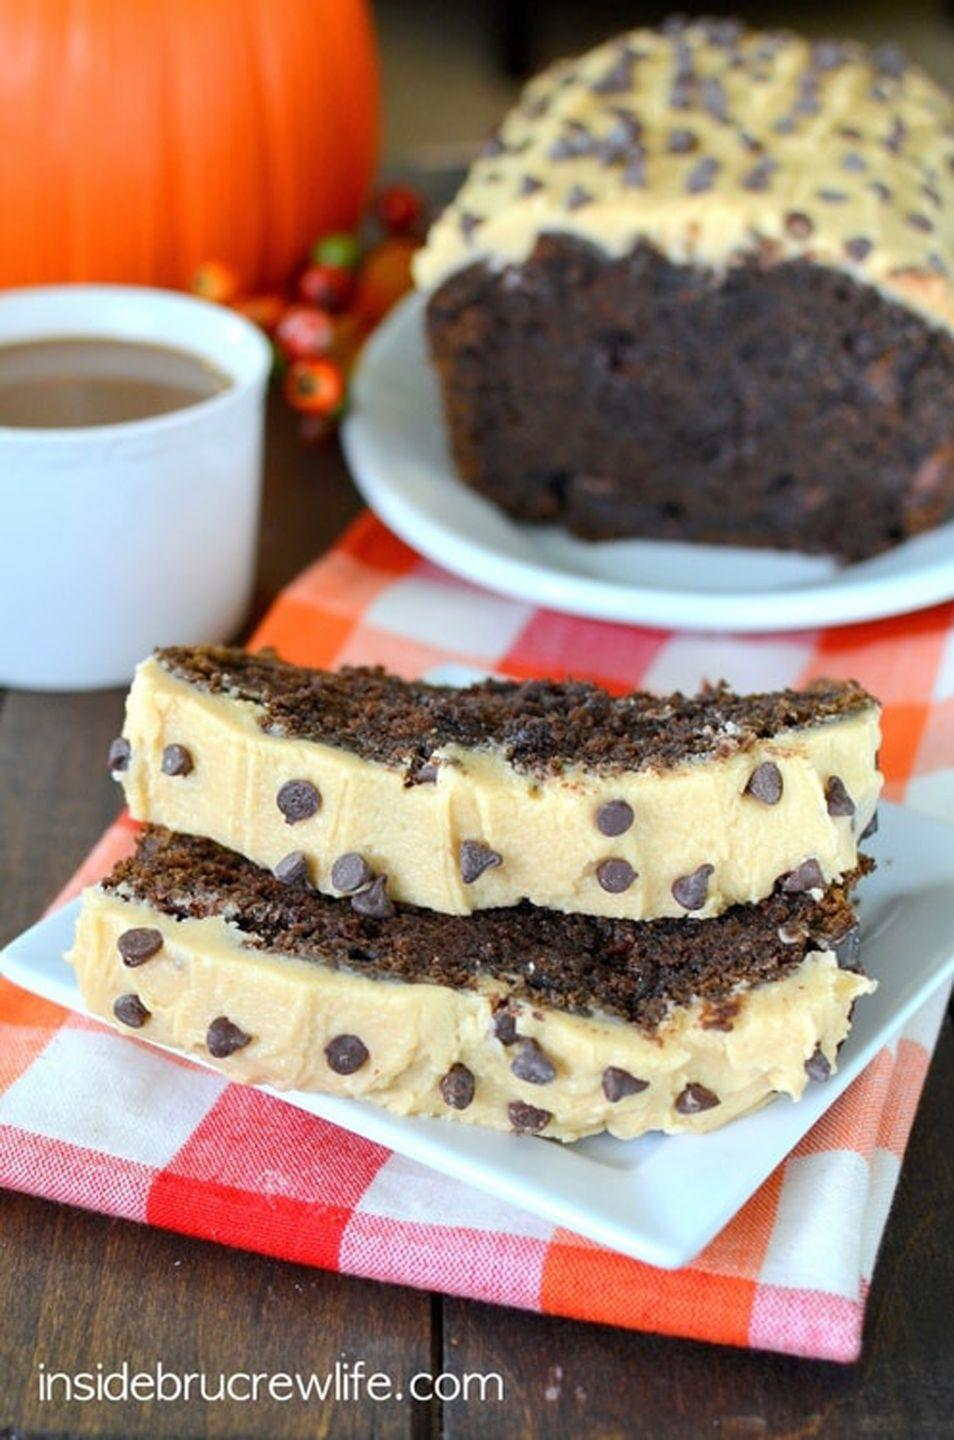 """<p>Chocolate chips, chocolate chunks, <em>and </em>caramel frosting? It doesn't get much sweeter than this.</p><p><strong>Get the recipe at <a href=""""https://insidebrucrewlife.com/caramel-chocolate-chunk-pumpkin-bread/"""" rel=""""nofollow noopener"""" target=""""_blank"""" data-ylk=""""slk:Inside BruCrew Life"""" class=""""link rapid-noclick-resp"""">Inside BruCrew Life</a>.</strong></p>"""